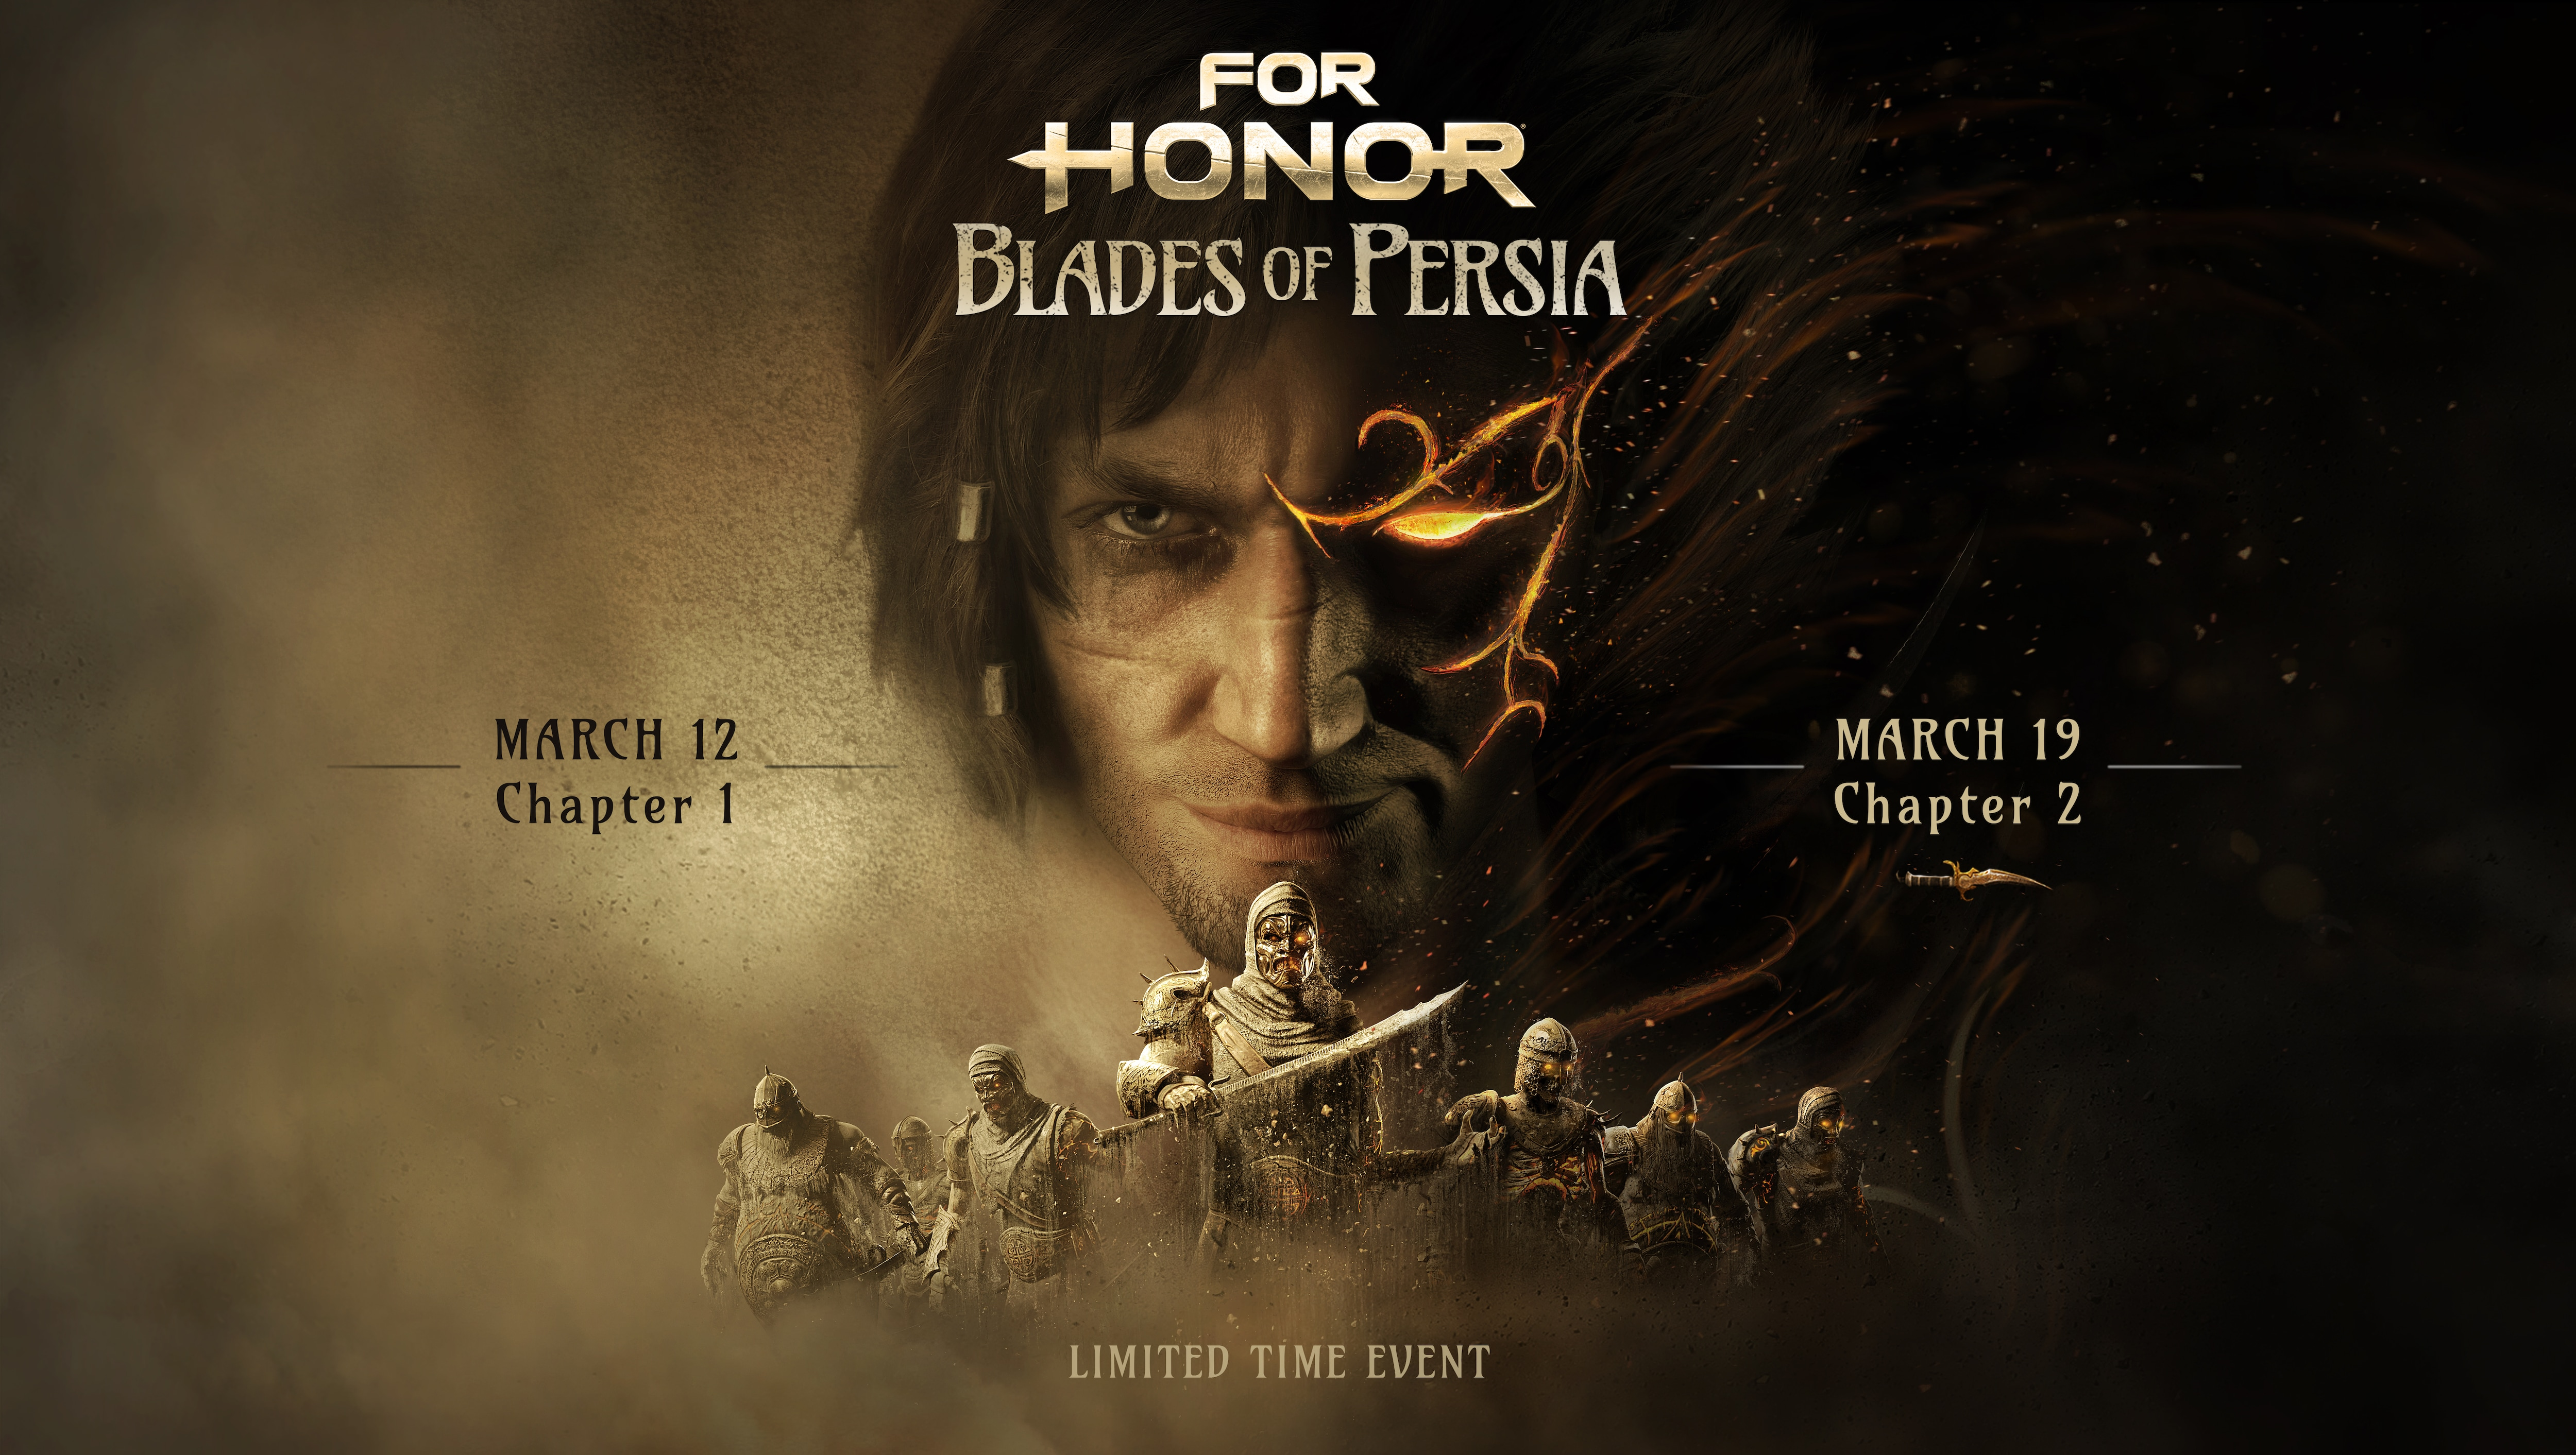 FH_news_Face the Blades of Persia